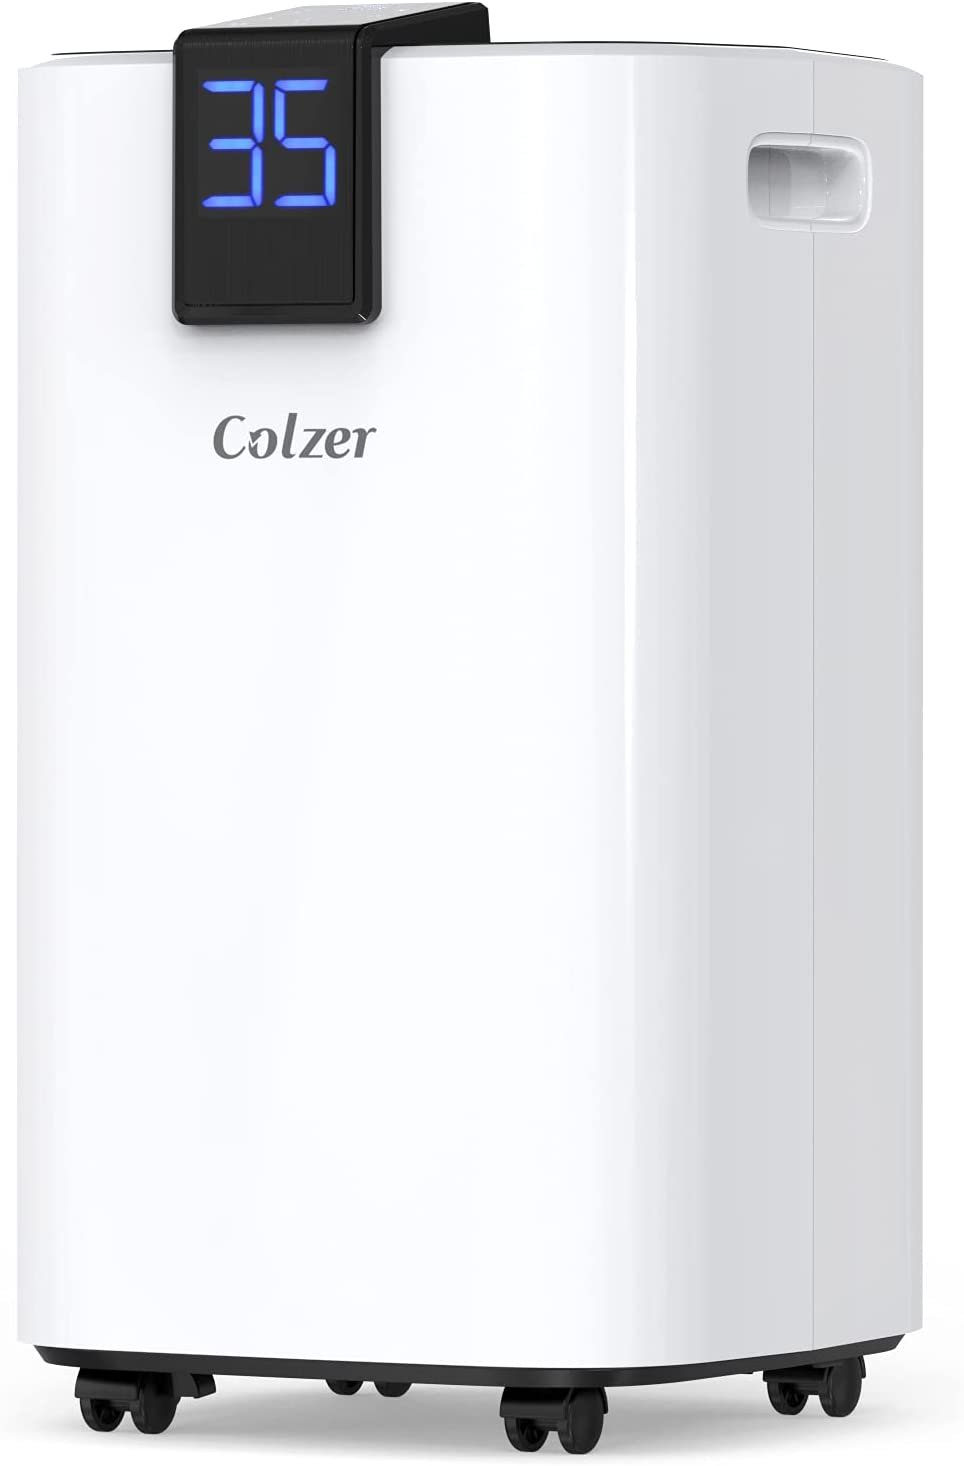 Selling rankings COLZER 30 Pints 1 500 SQ Home Basements Dehumidifiers FT for Price reduction L